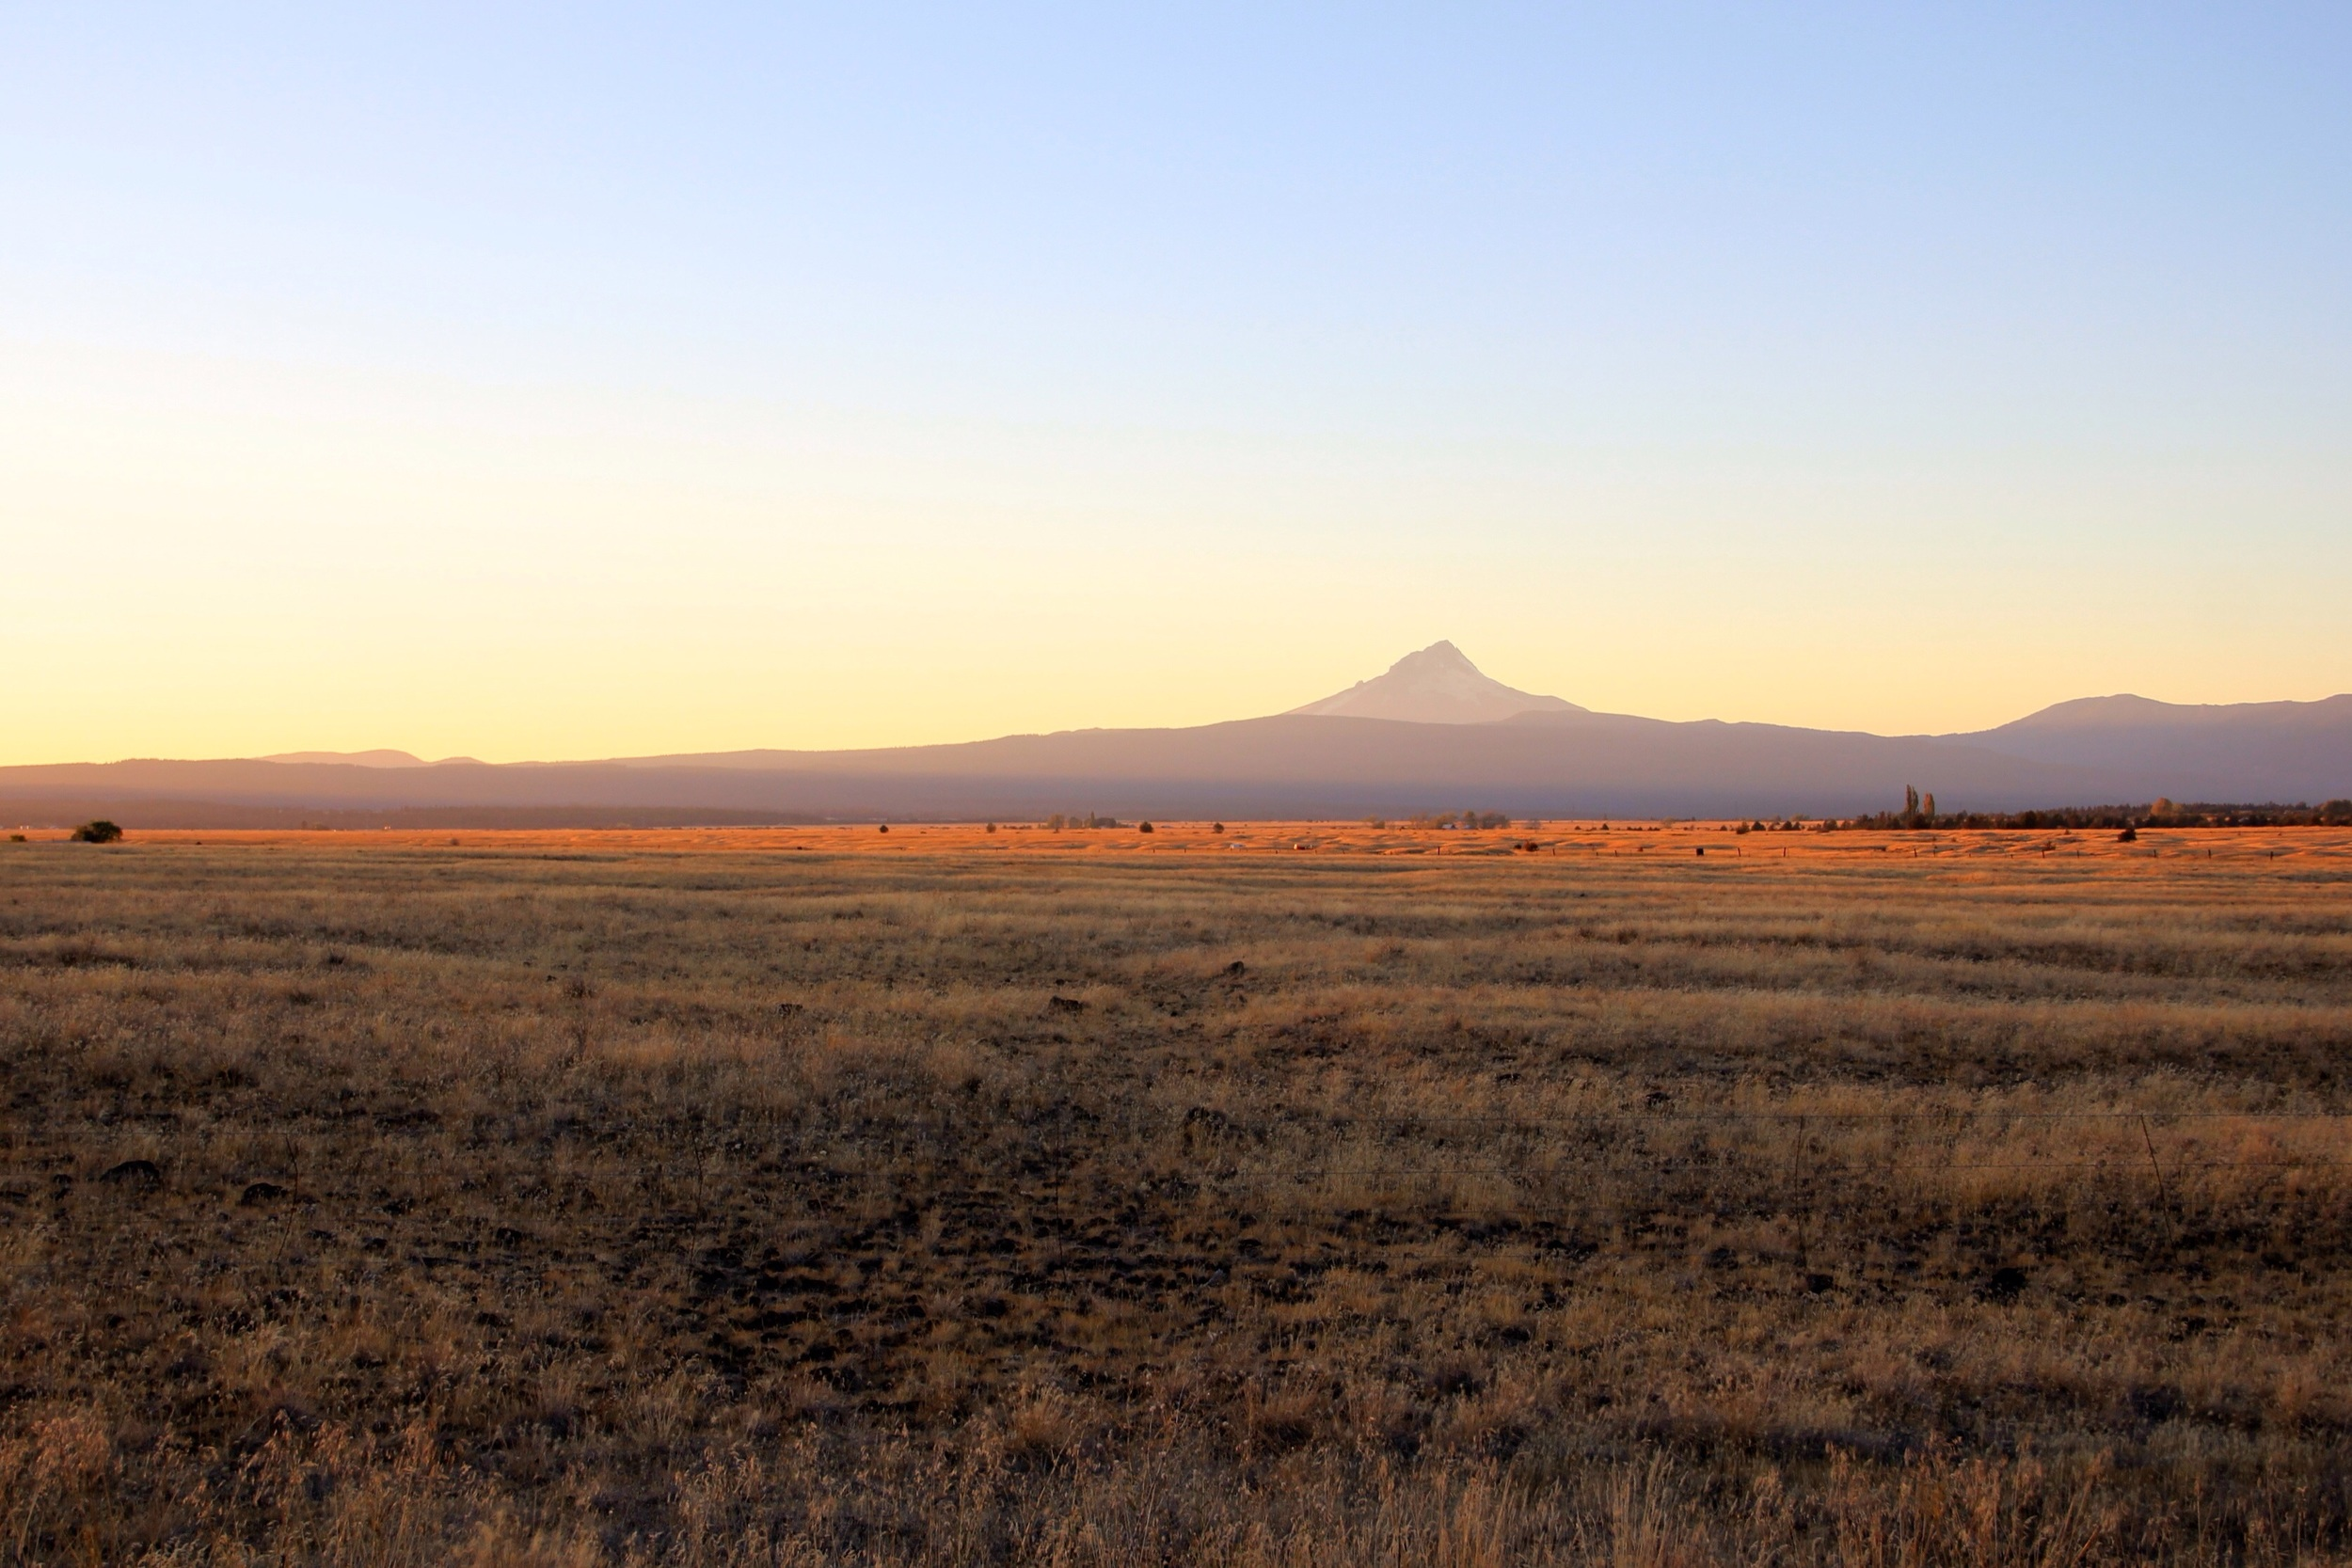 Mount Hood in distance at sunset